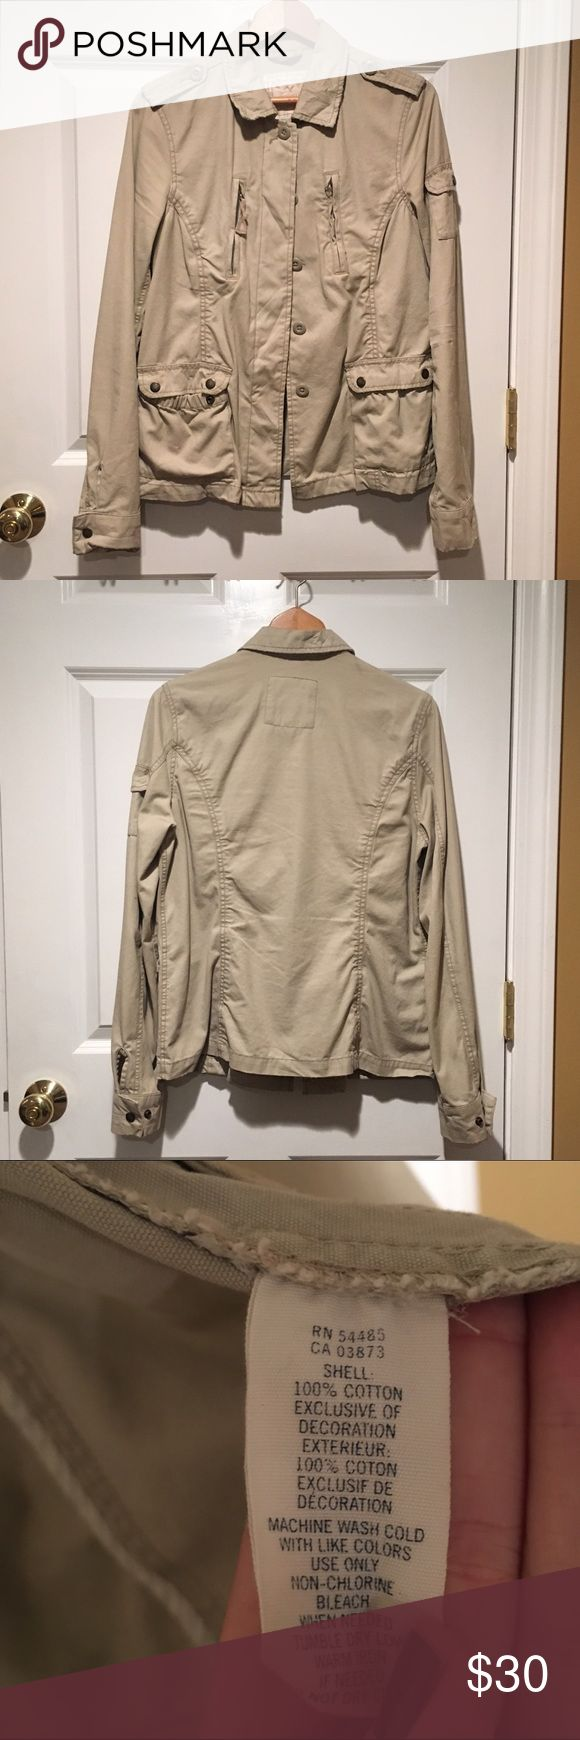 American Eagle Outfitters Cargo Jacket - Tan American Eagle Outfitters Cargo Jacket in Tan. This has been worn but has no stains, rips or fading. American Eagle Outfitters Jackets & Coats